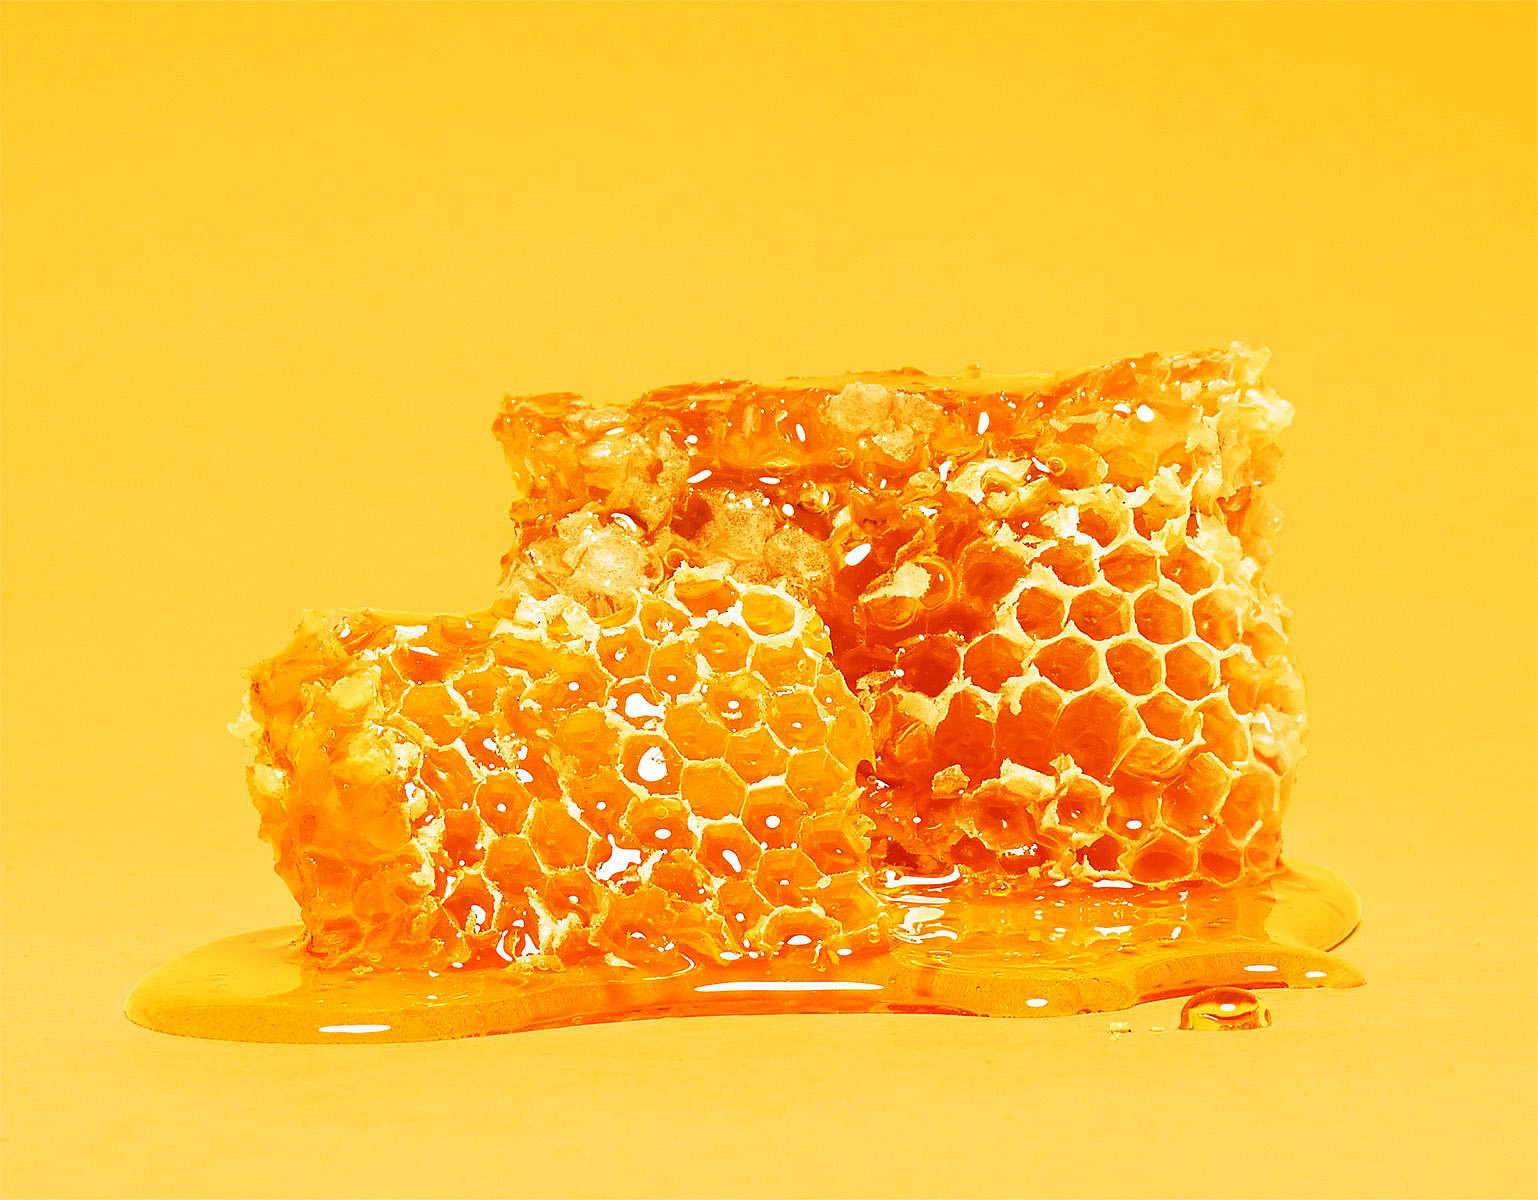 Caruso_Android_Honeycomb_300dpi